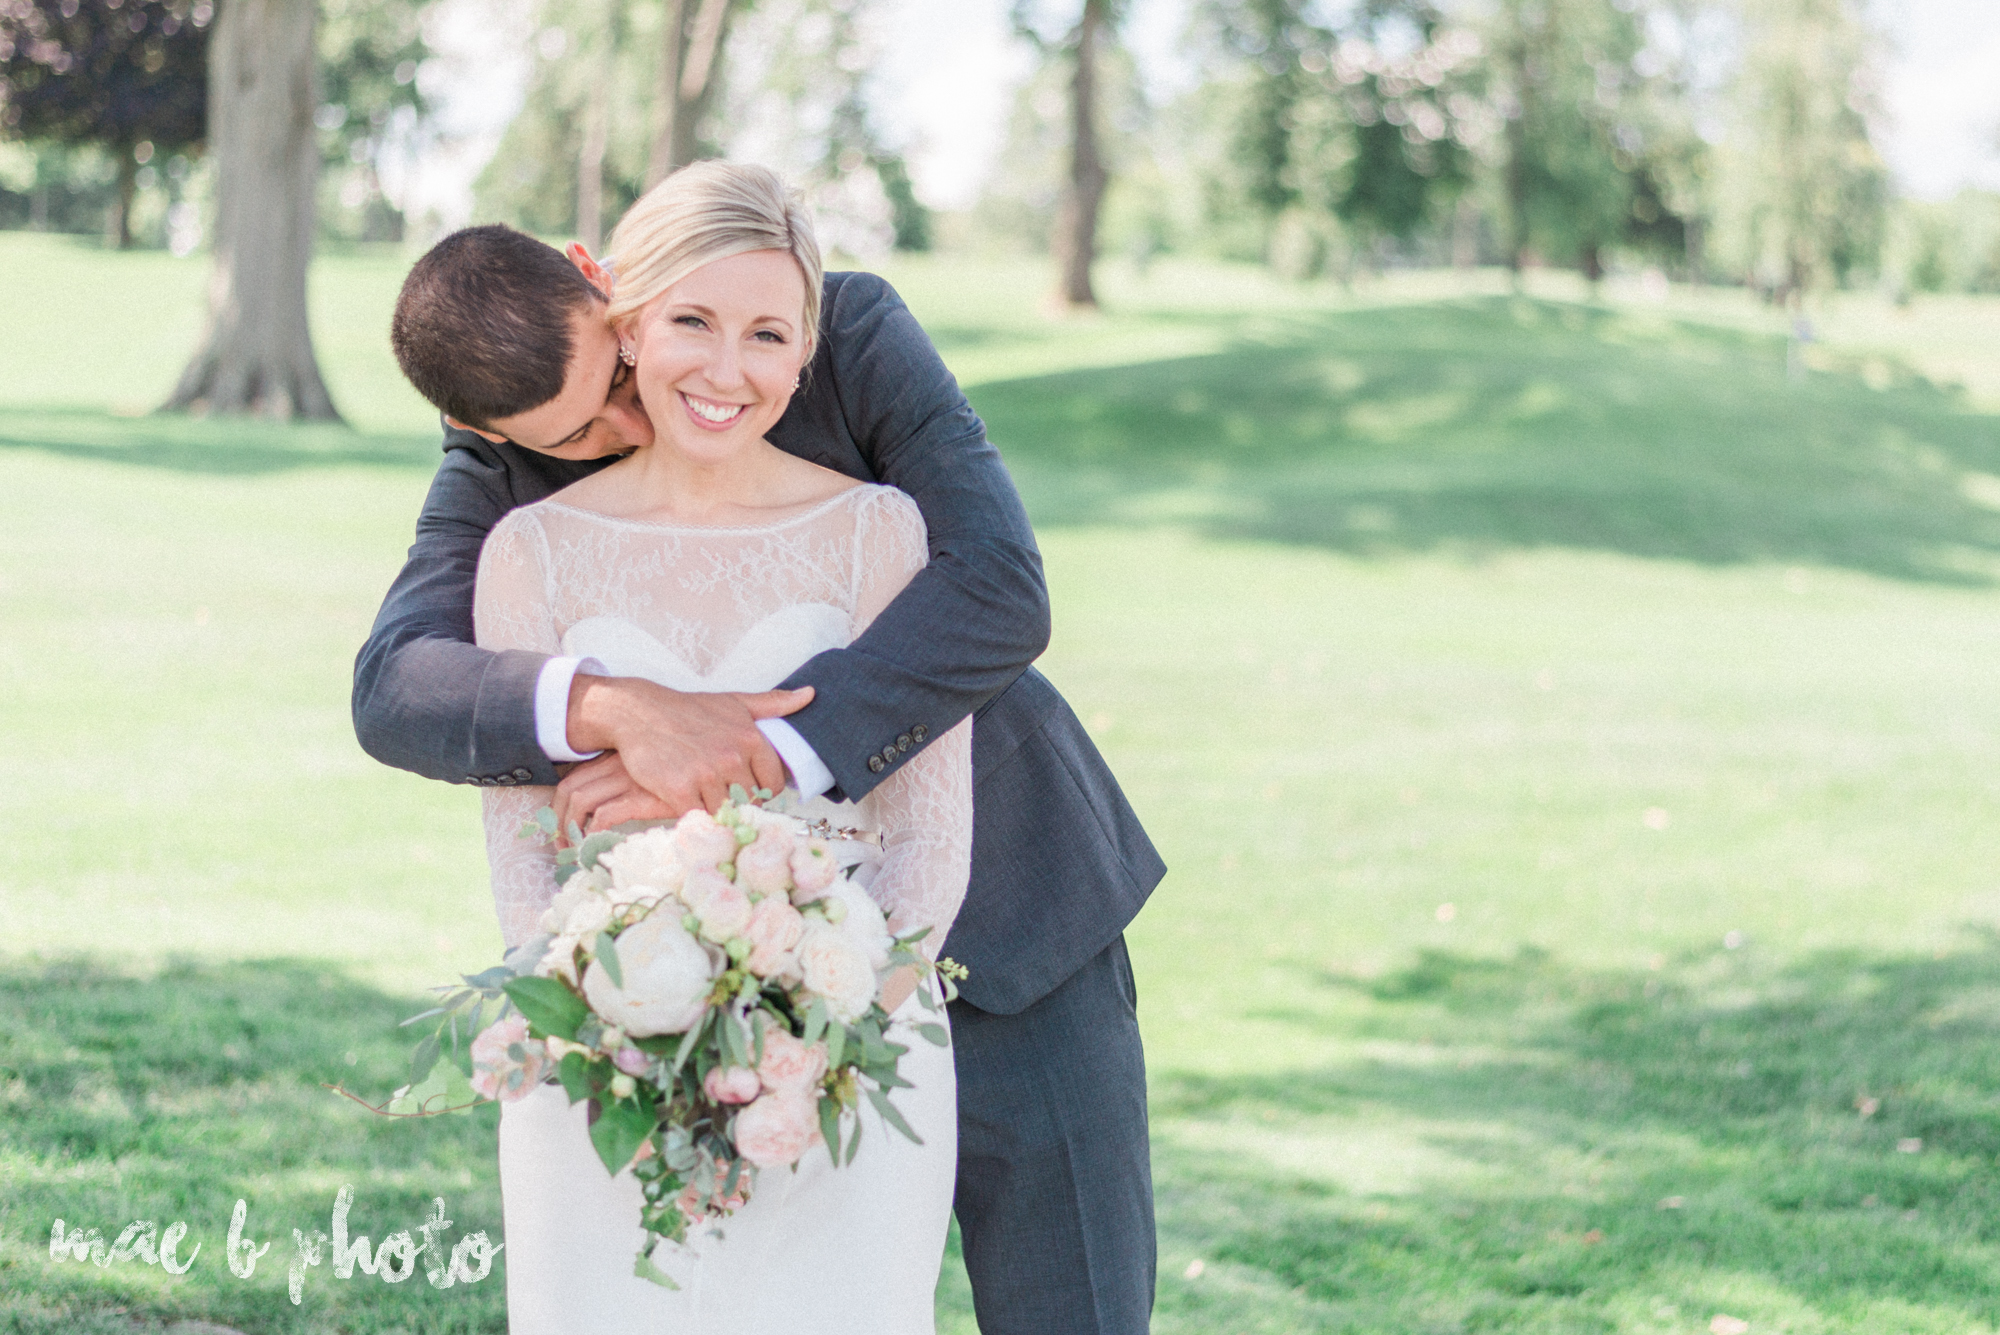 emily and michael's industrial chic summer country club wedding at the lake club in poland ohio photographed by cleveland wedding photographer mae b photo-68.jpg